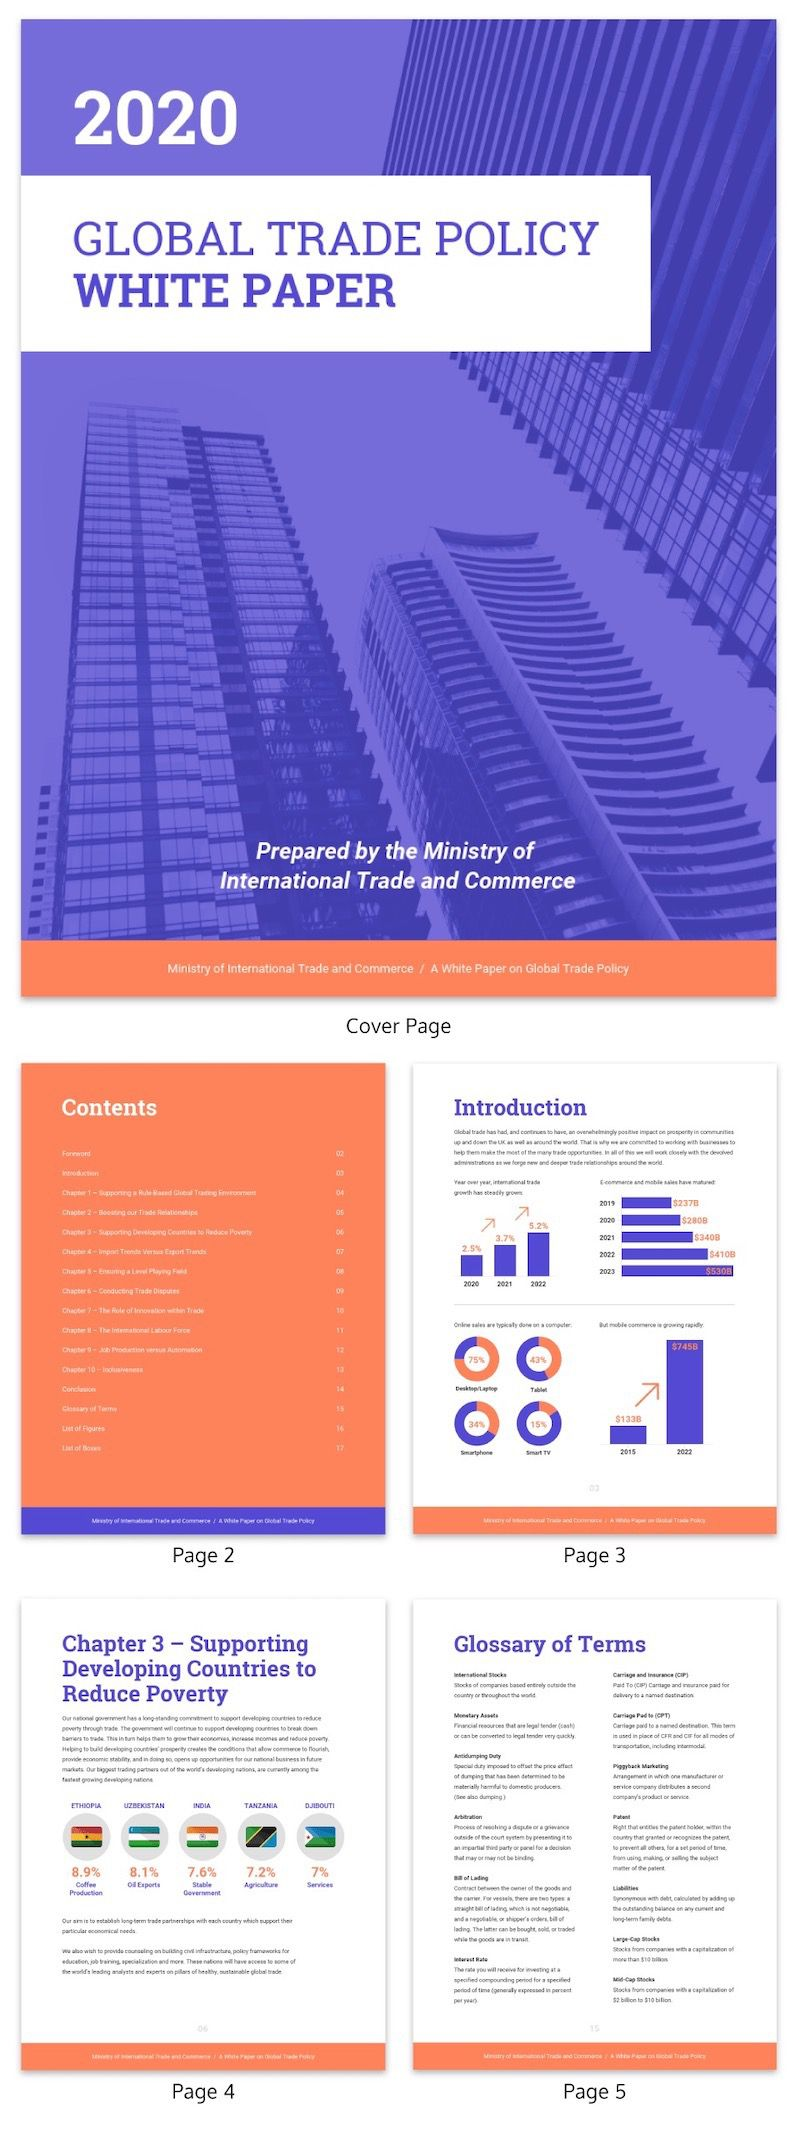 005 Unusual Technical White Paper Template Sample  Example DocFull